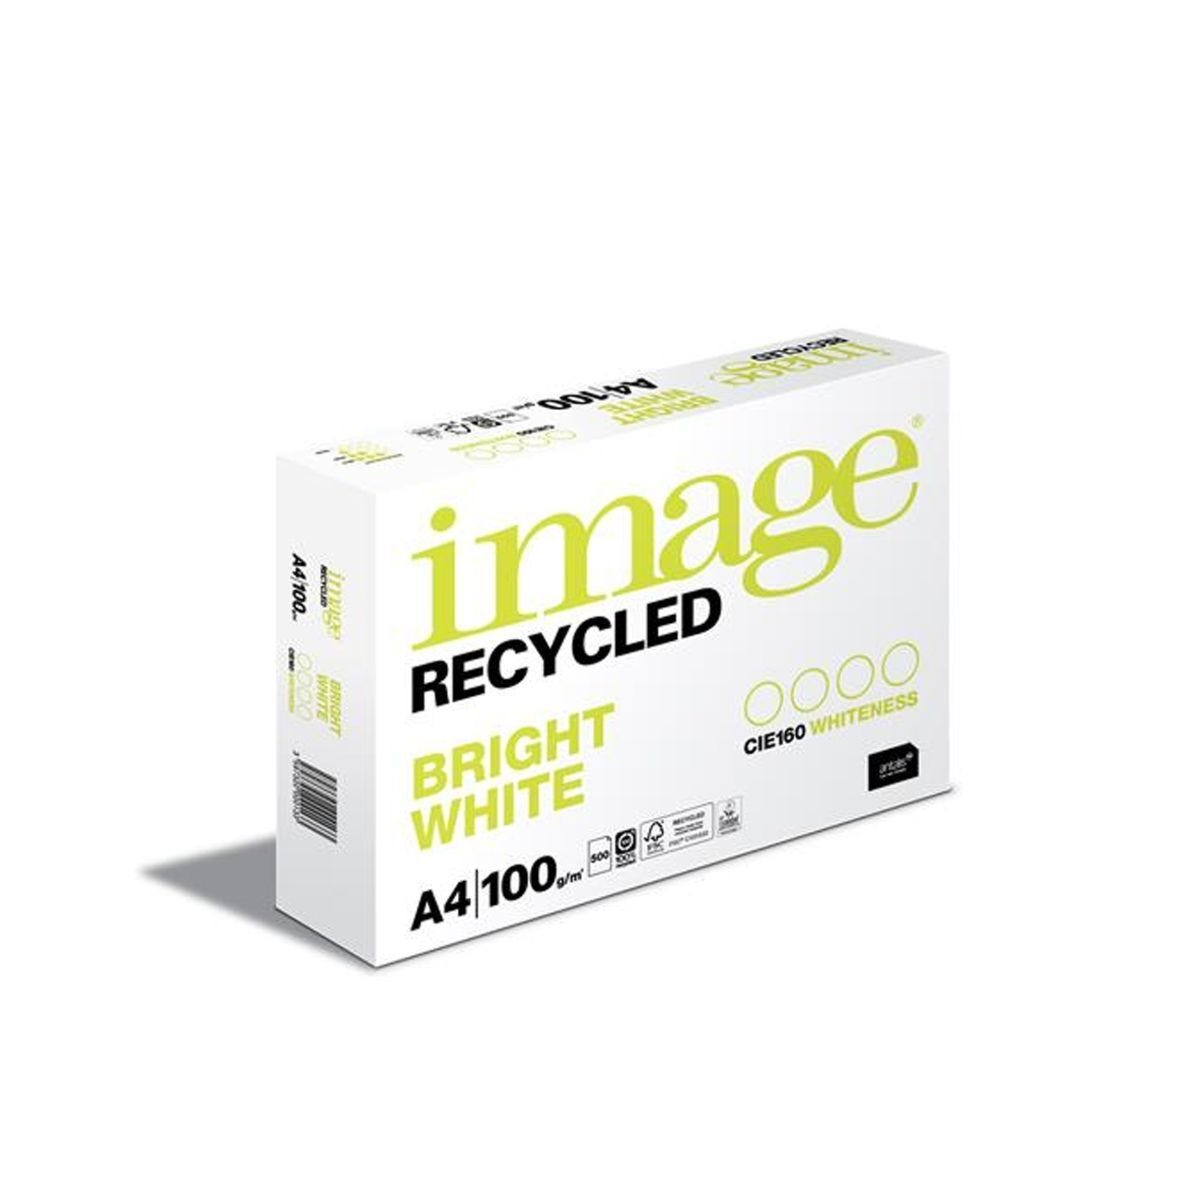 Image Recycled Bright White Copier Paper A4 Ream 80gsm